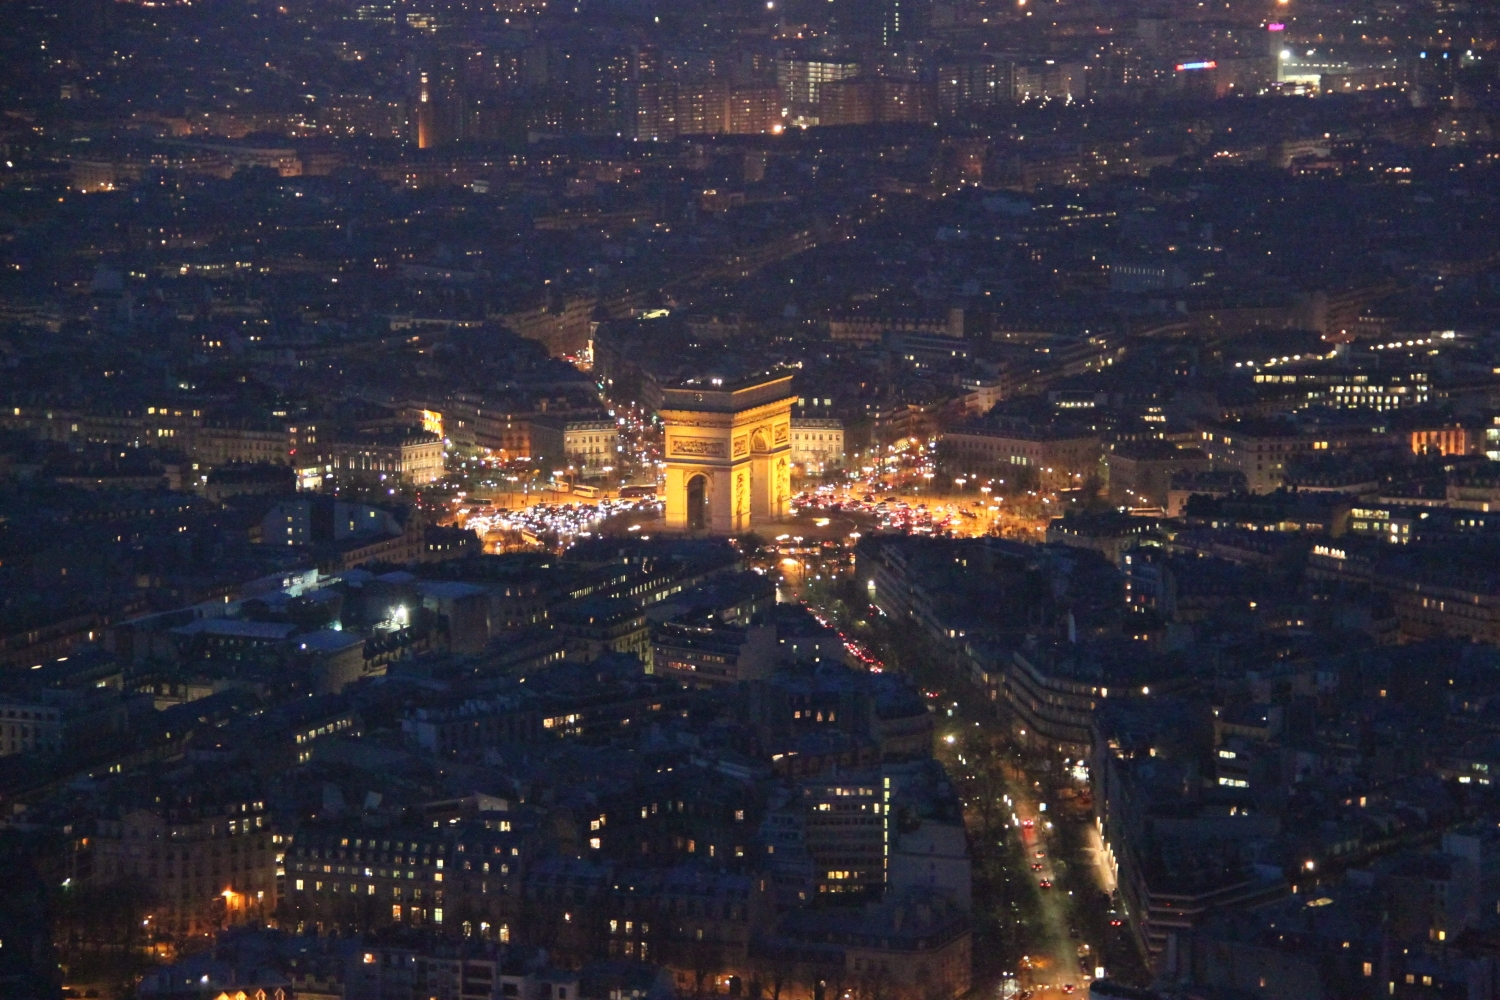 Eiffel Tower - Paris Arc de Triomphe night